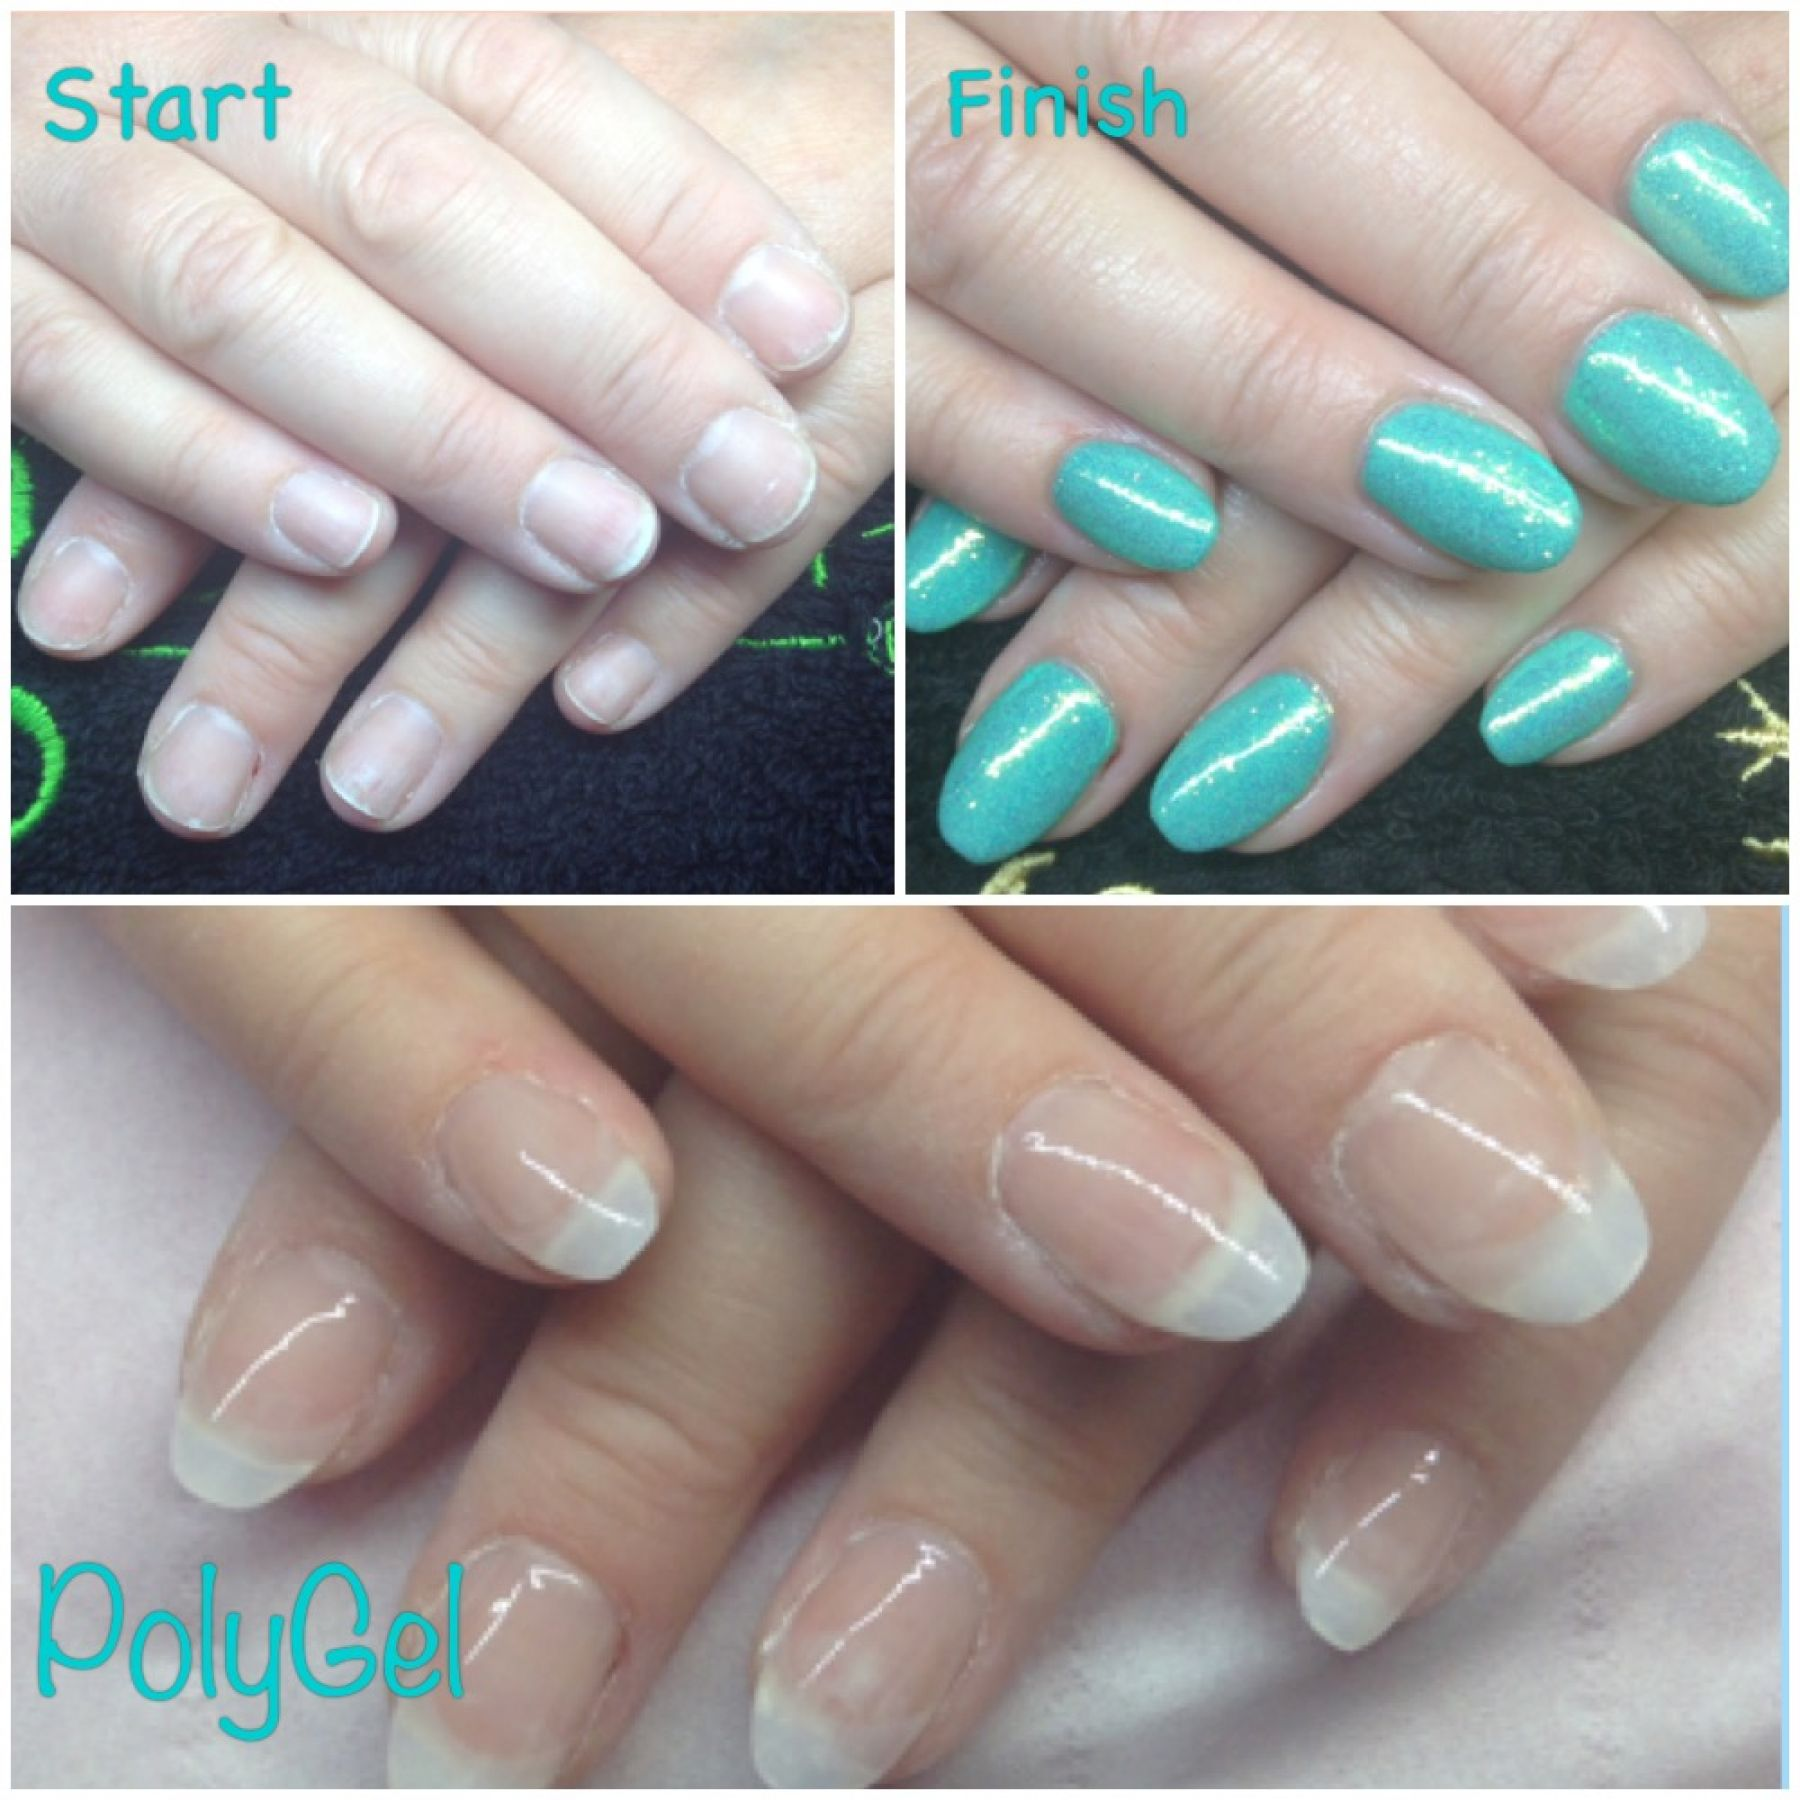 Polygel Testimonial Debbie Checkley